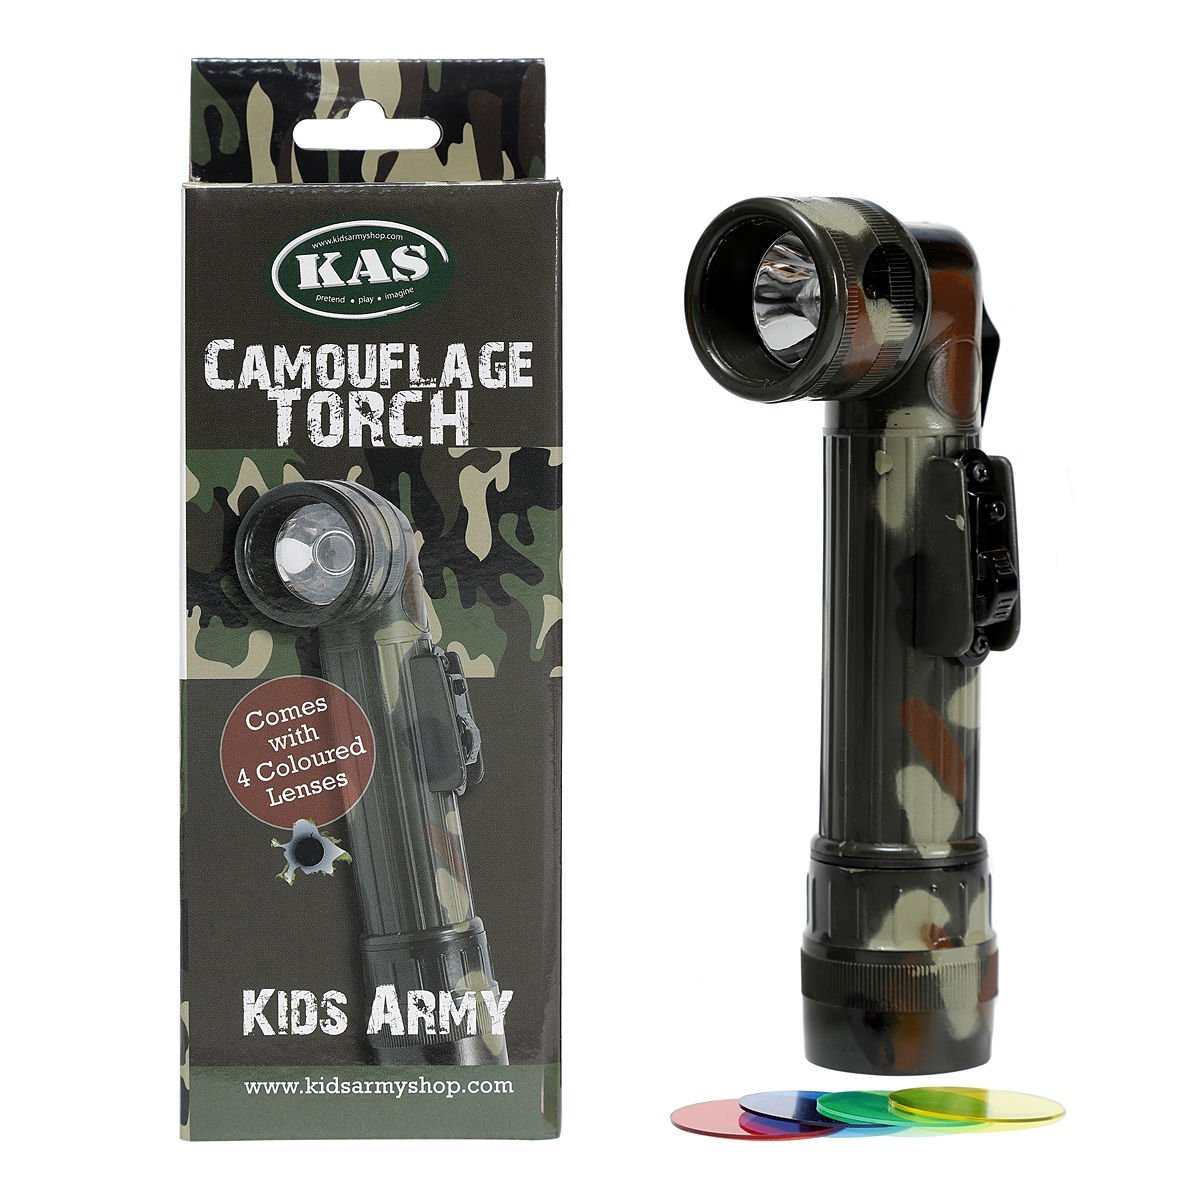 KAS Kids Camouflage C Torch-4 coloré Lenses-Camo armée Roleplay, C Cell 1016